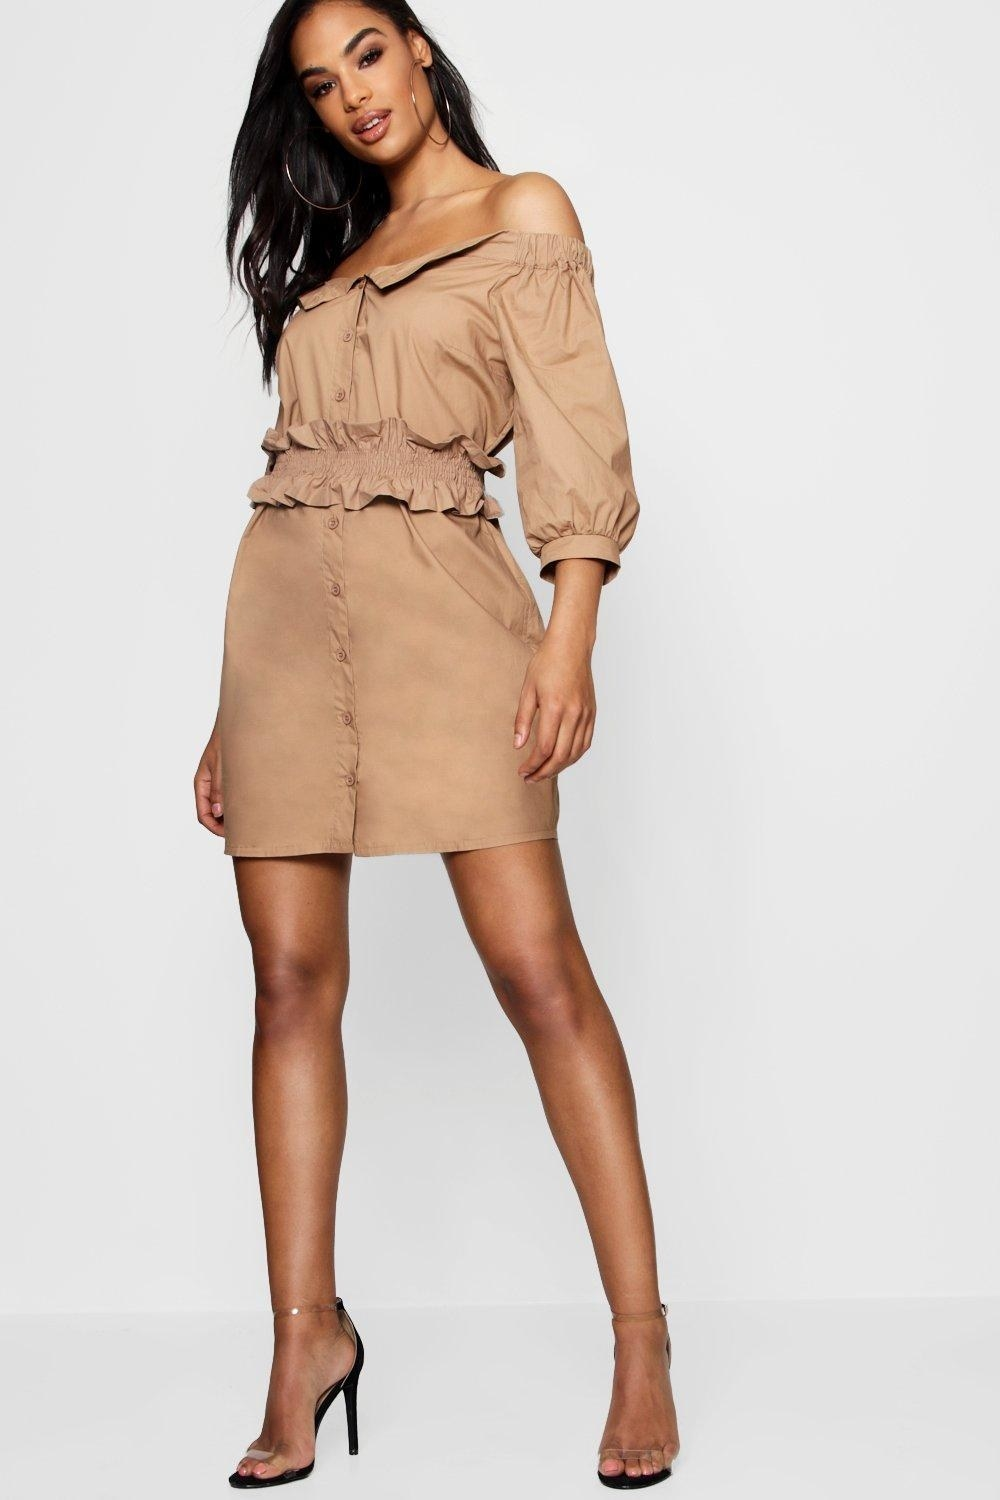 Price: $27 (originally $51; available in sizes 4-12 and in three colors)